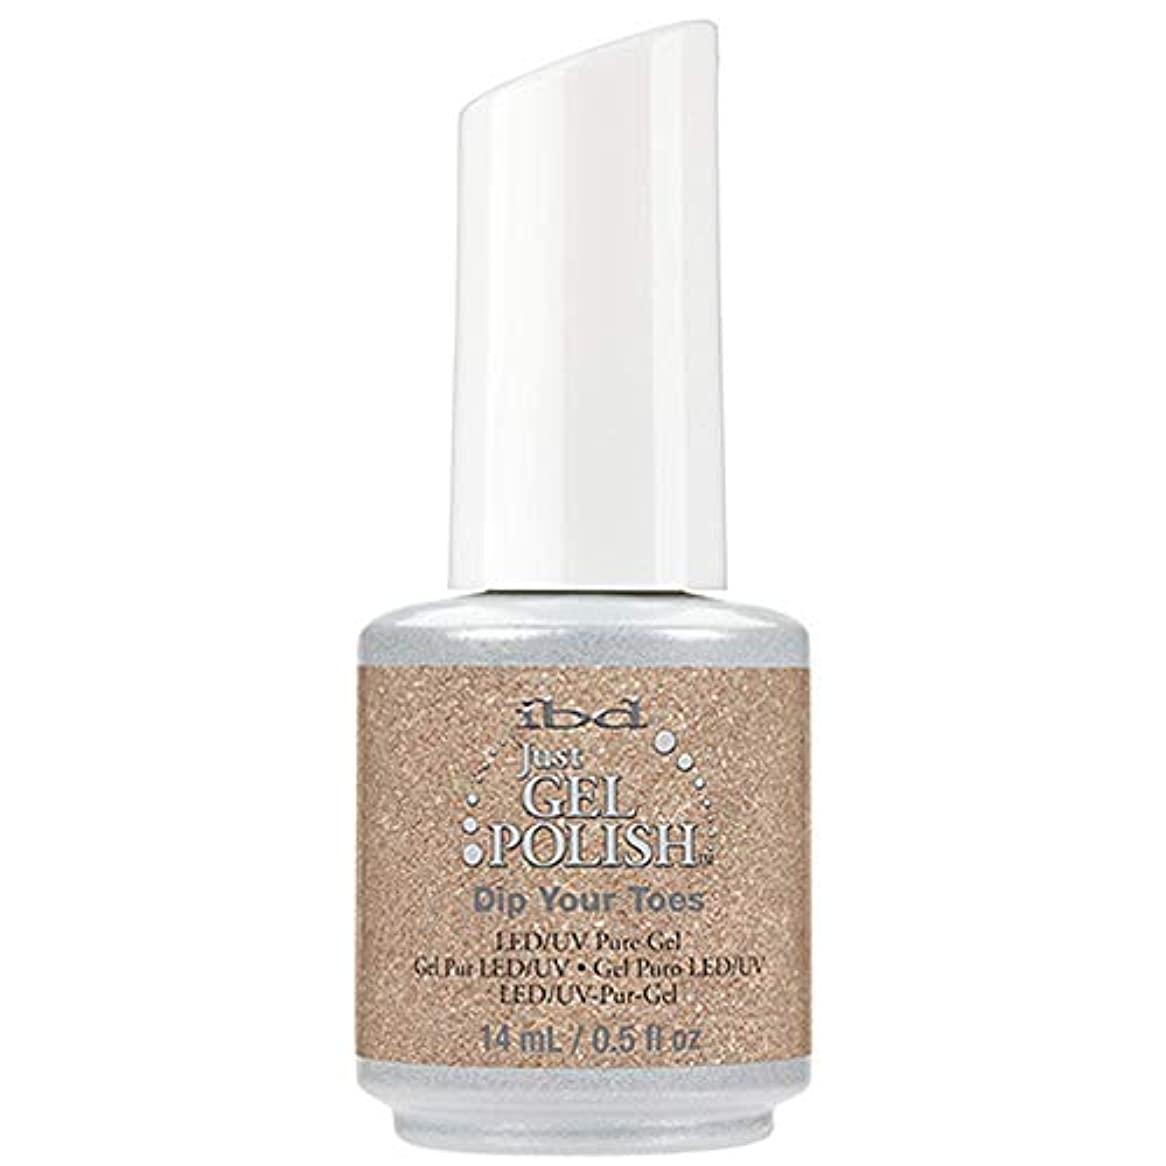 コウモリ煩わしい酔っ払いibd Just Gel Nail Polish - Dip Your Toes - 14ml / 0.5oz